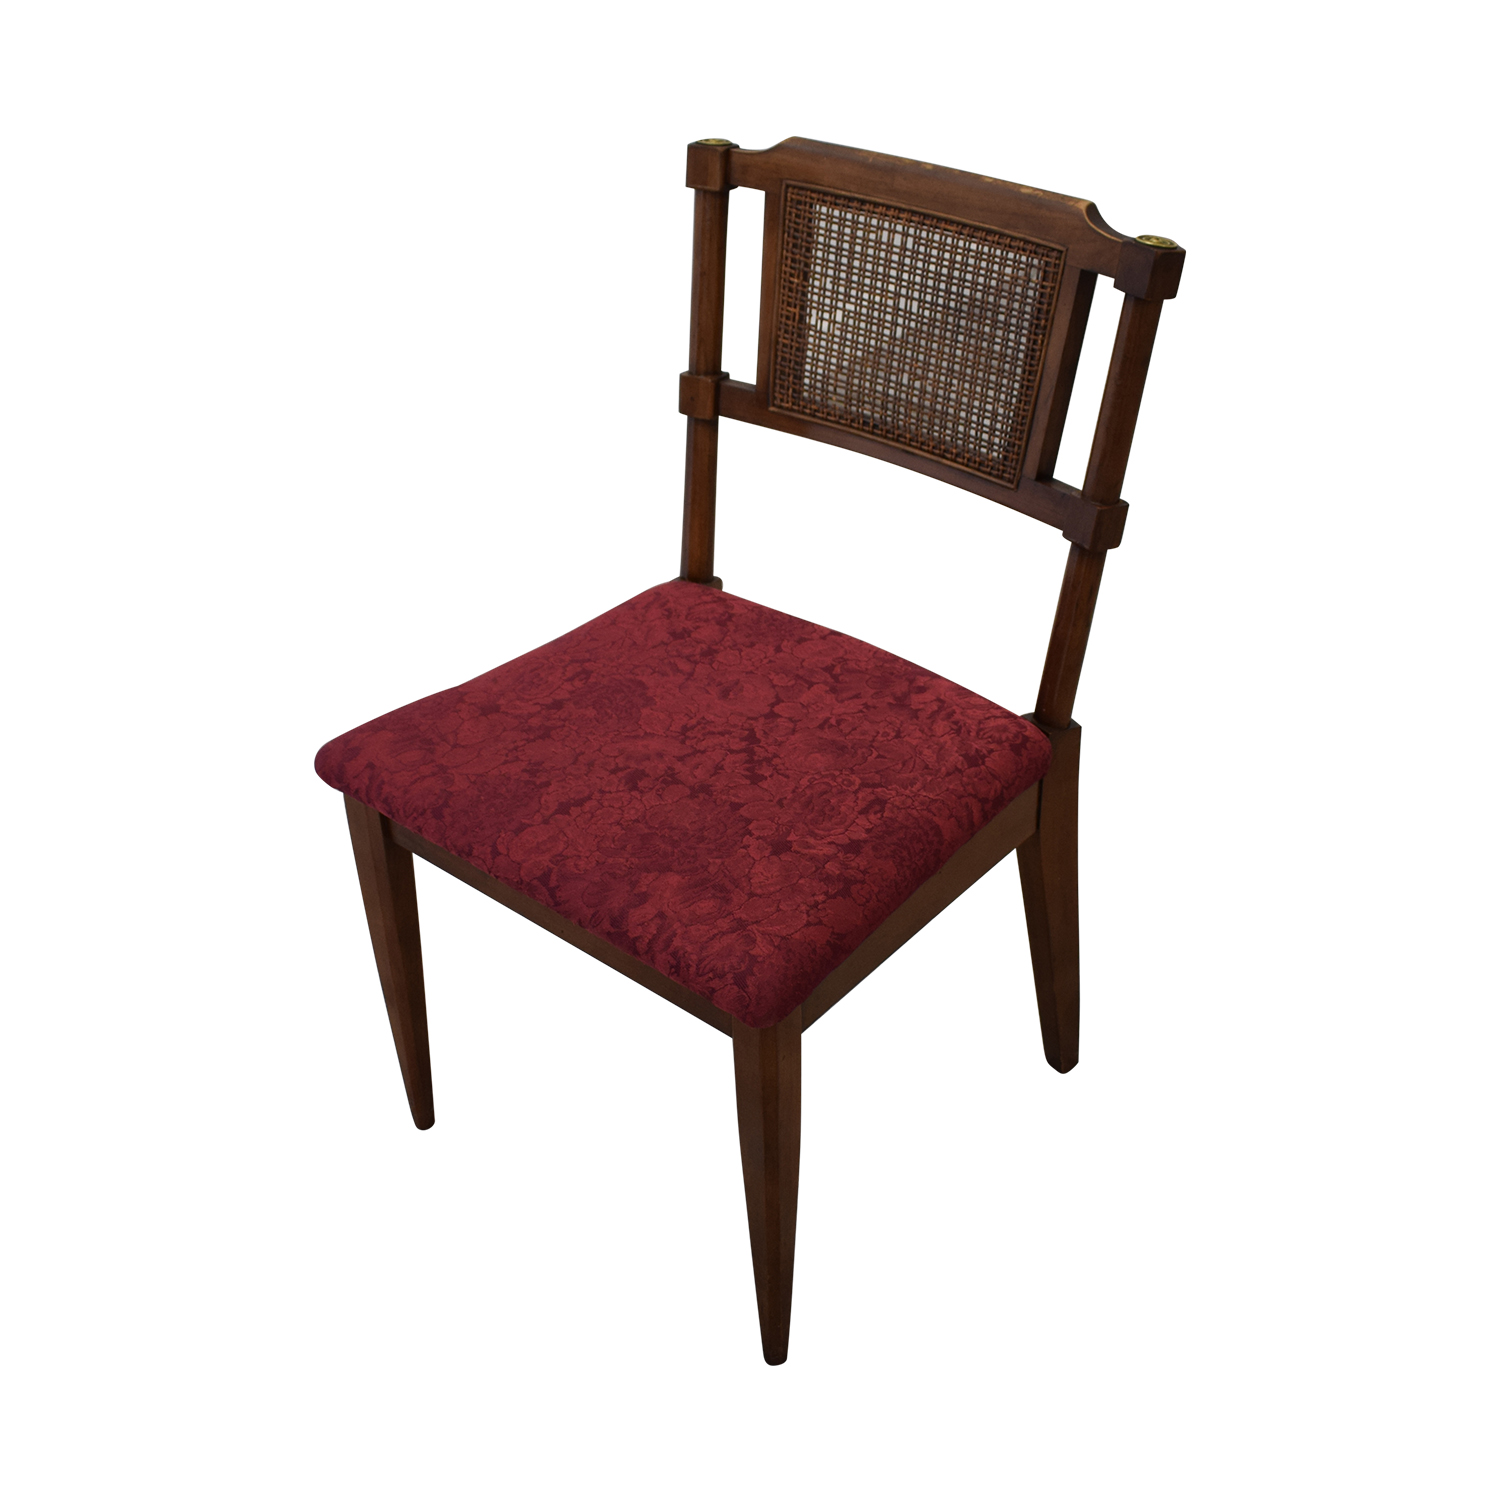 shop R & E Gordon Furniture Co. R & E Gordon Furniture Co. Dining Chairs online